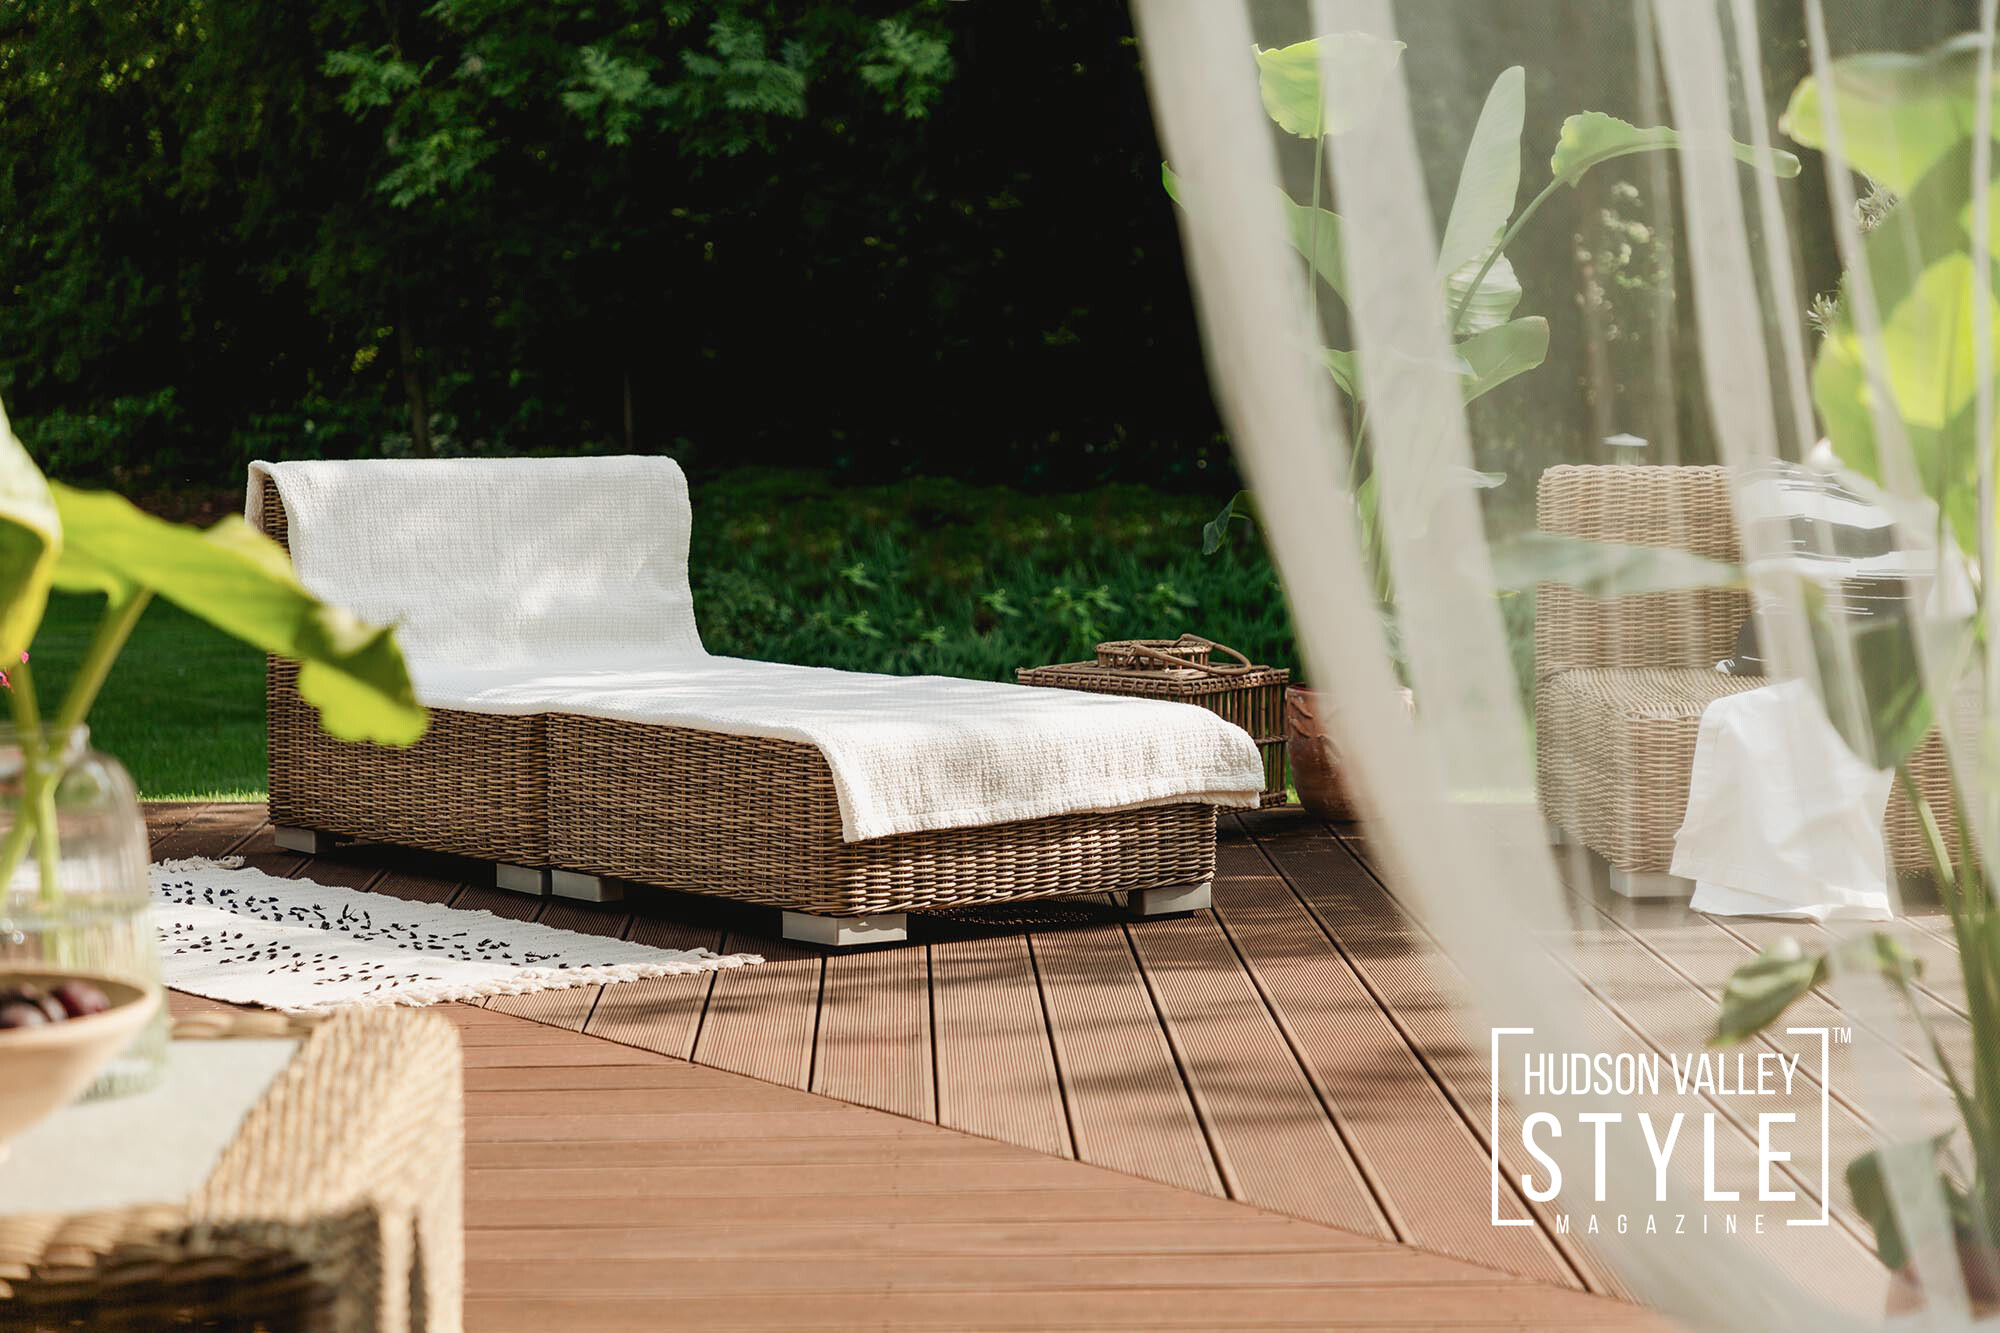 Create a Backyard Oasis to Enjoy Hudson Valley Staycation This Spring